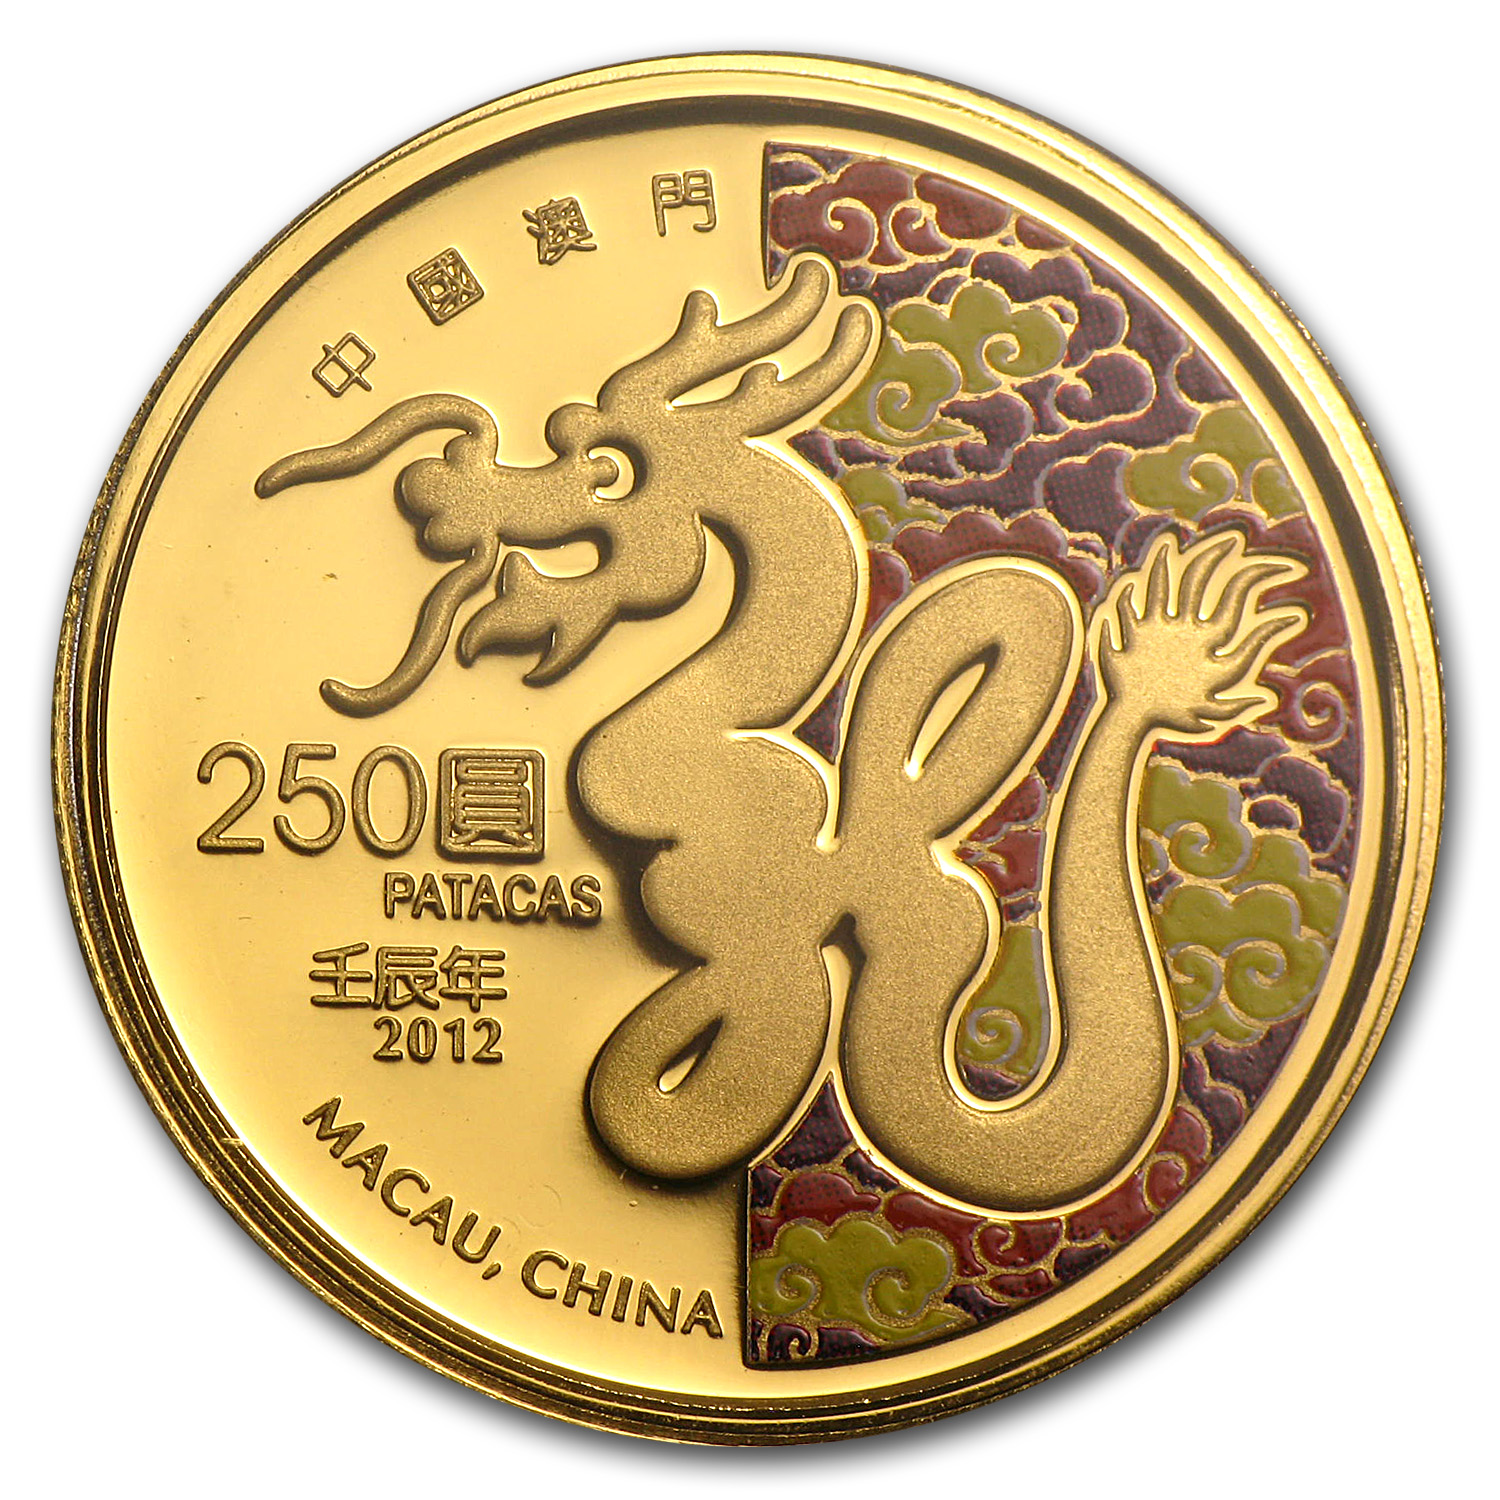 2012 Macau Year of the Dragon 1/4 oz. Gold Colorized Proof Coin